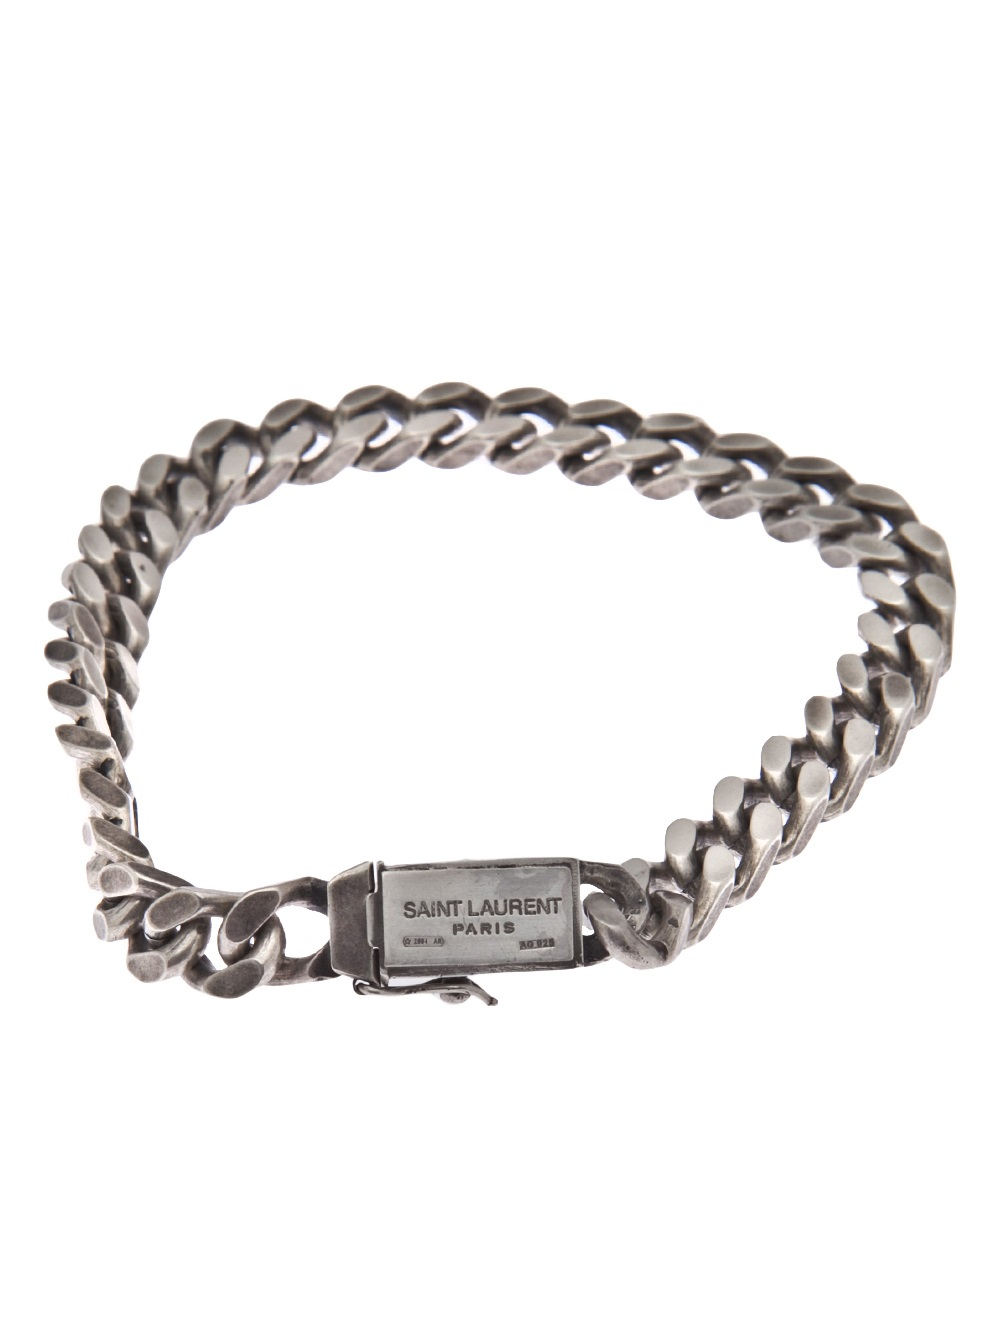 Saint Laurent Skull Bracelet In Metallic For Men Lyst